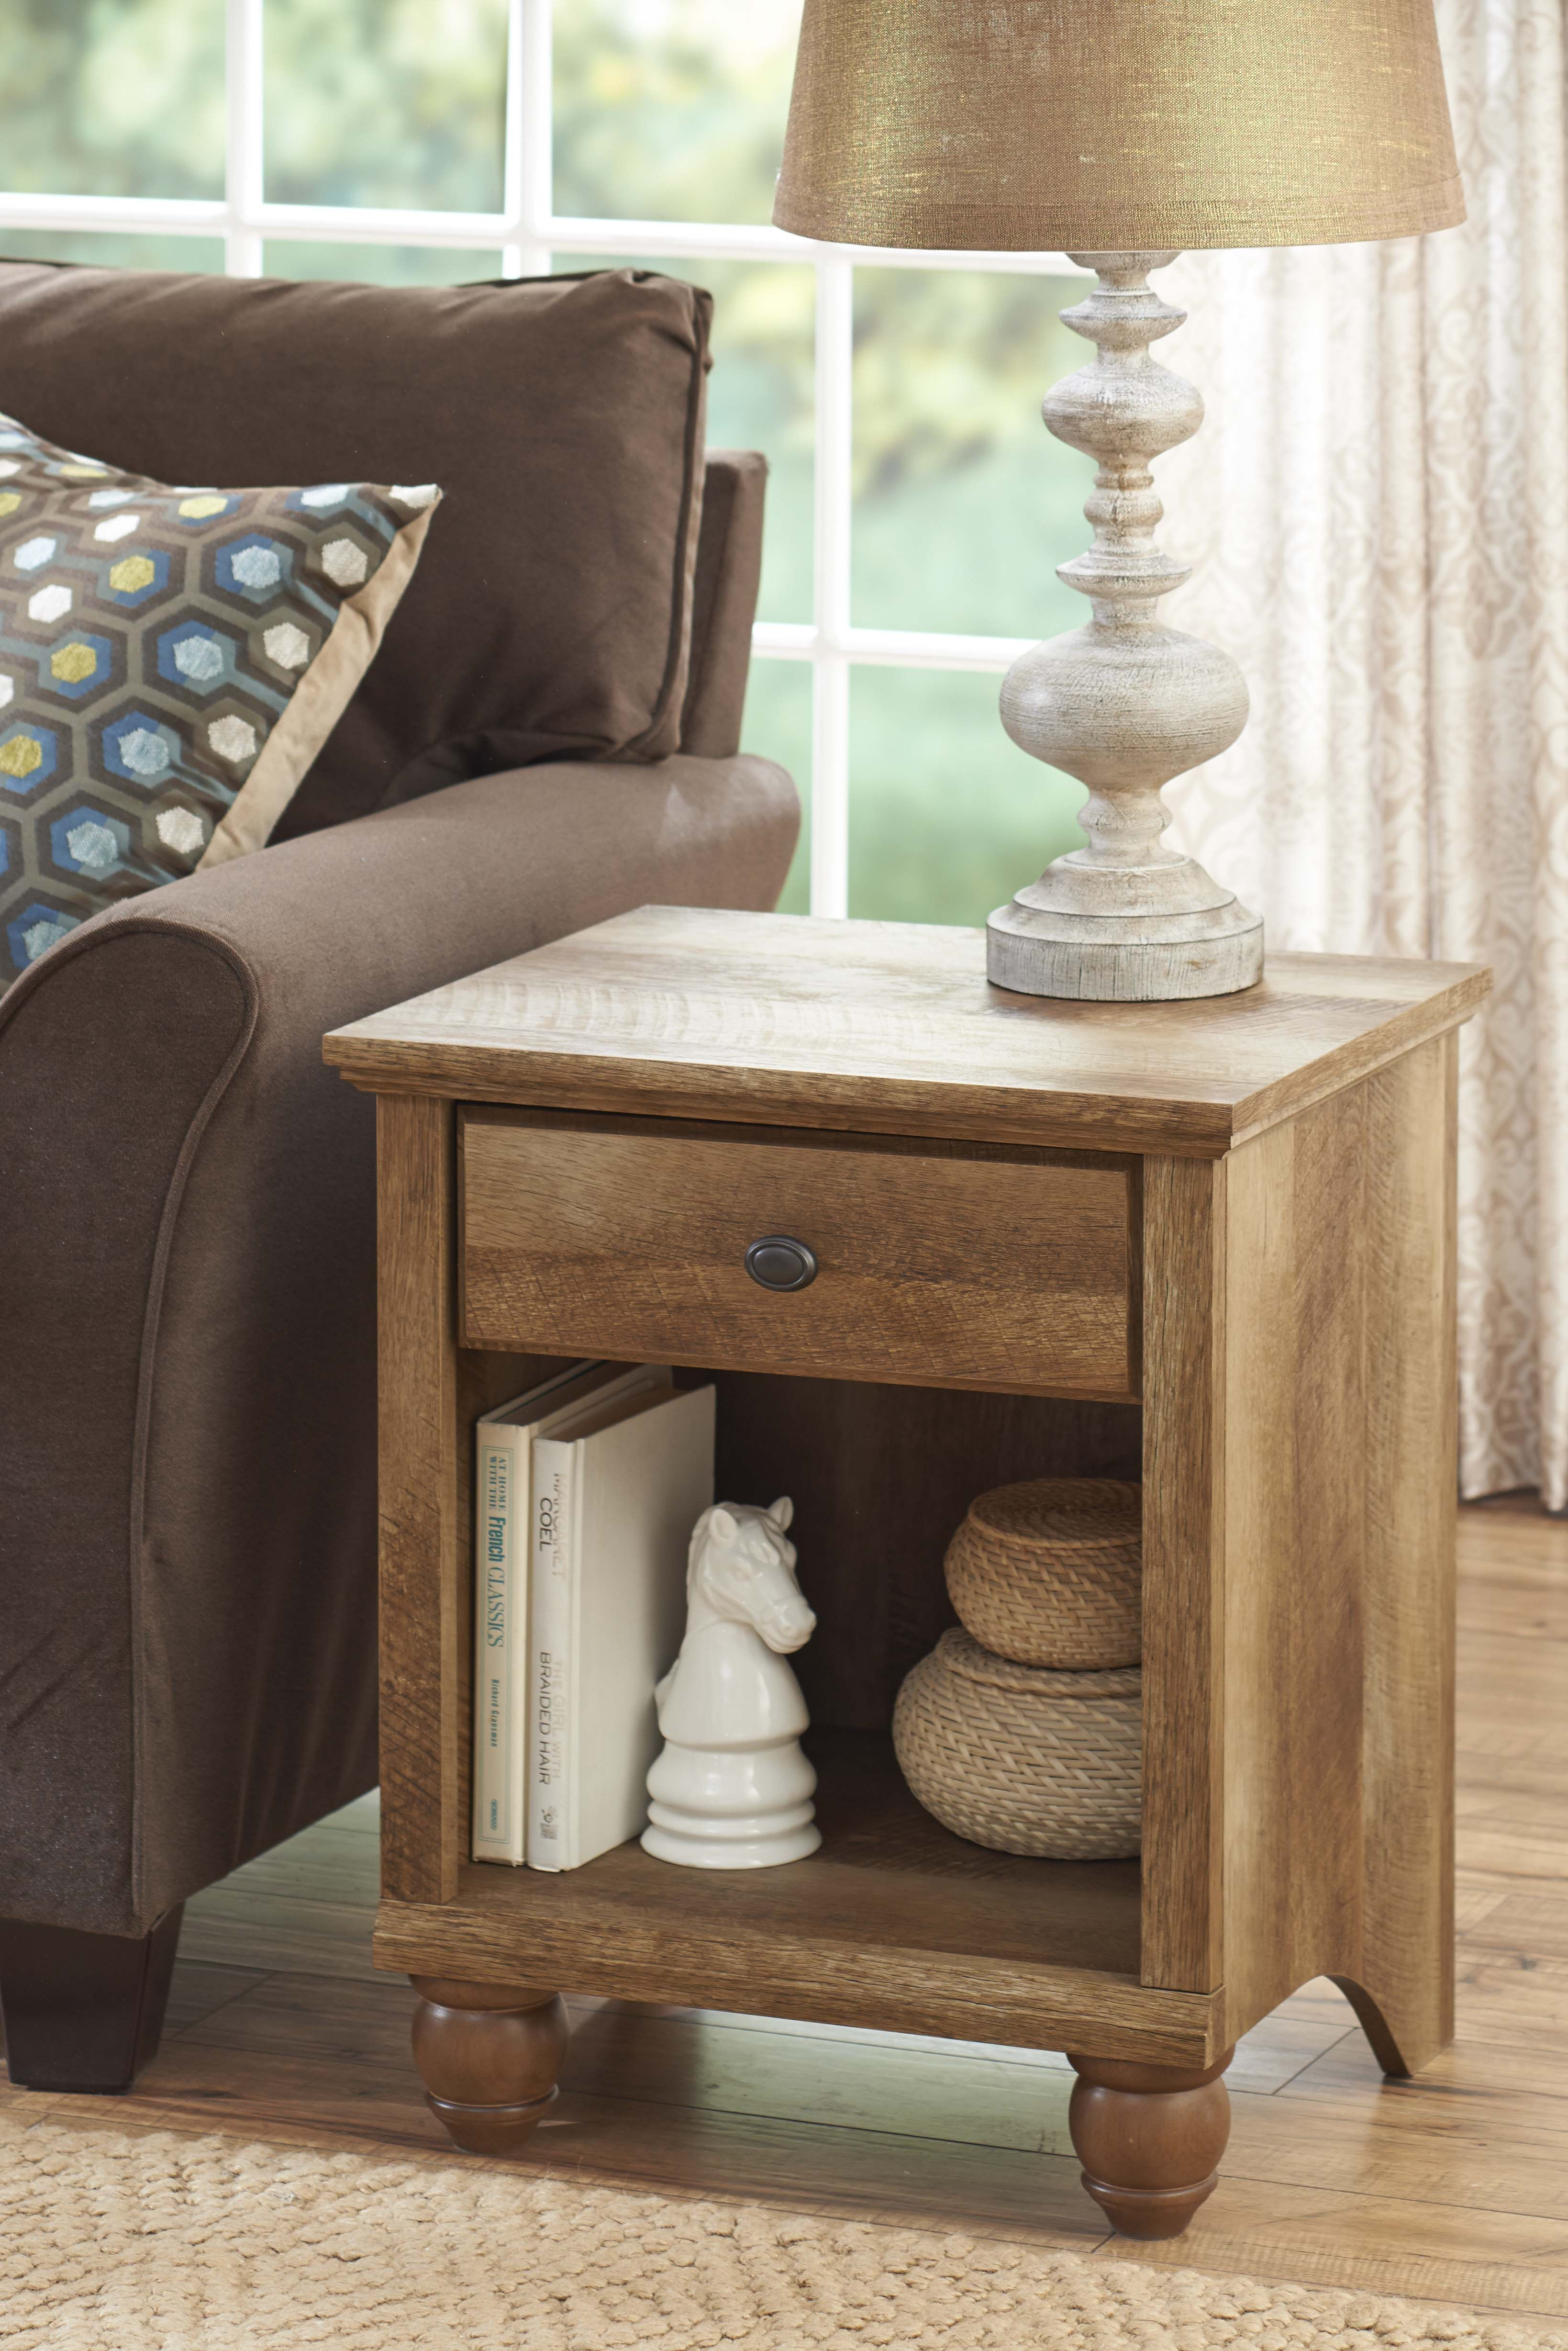 261f8943257744412ccb9549f2cd8e44 - Better Homes And Gardens Round Accent Table